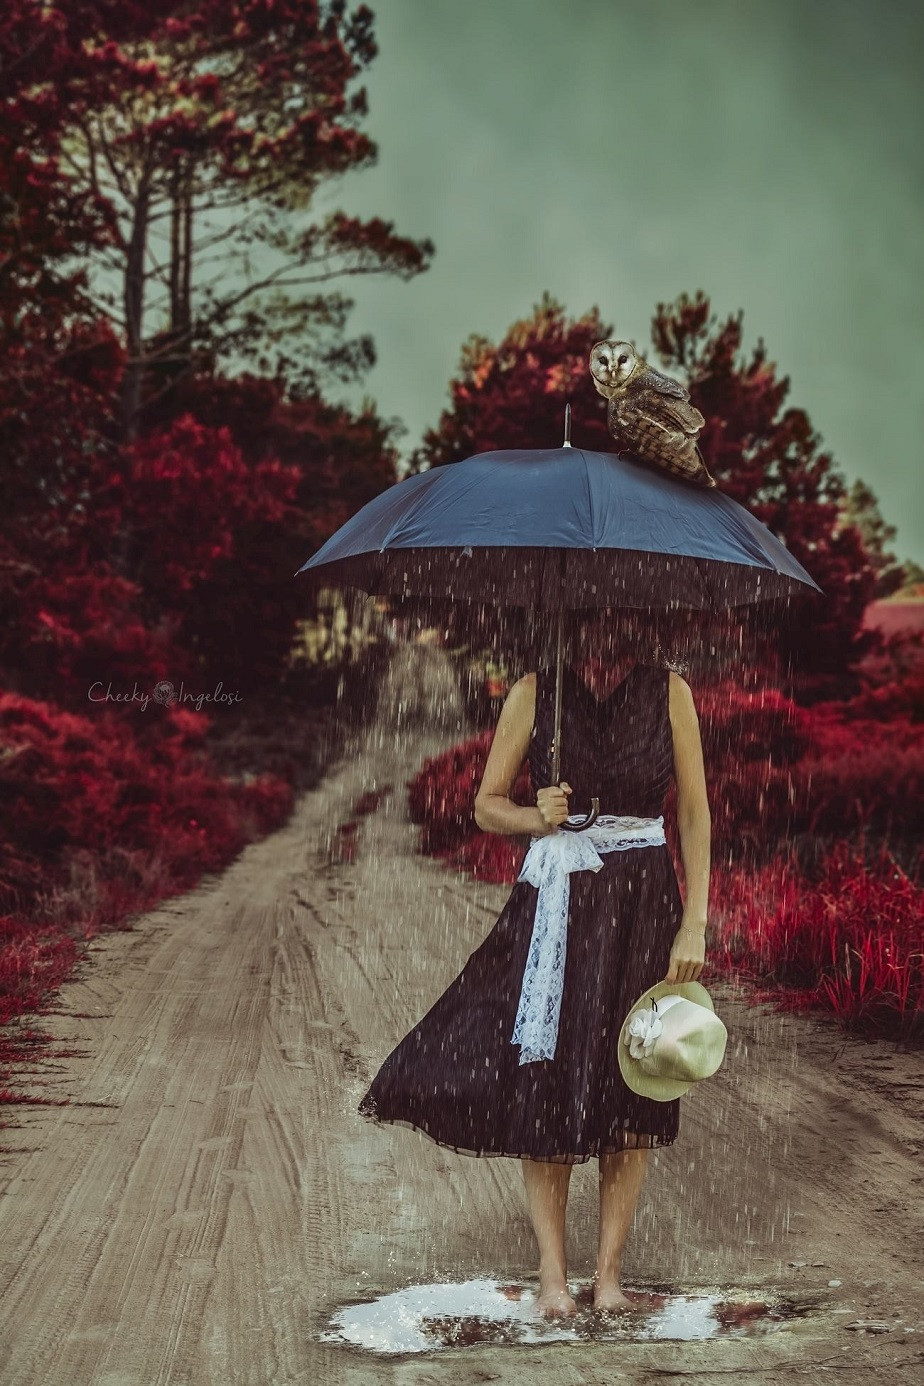 A Girl Called Melancholy by Wix Photographer Cheeky Ingelosi